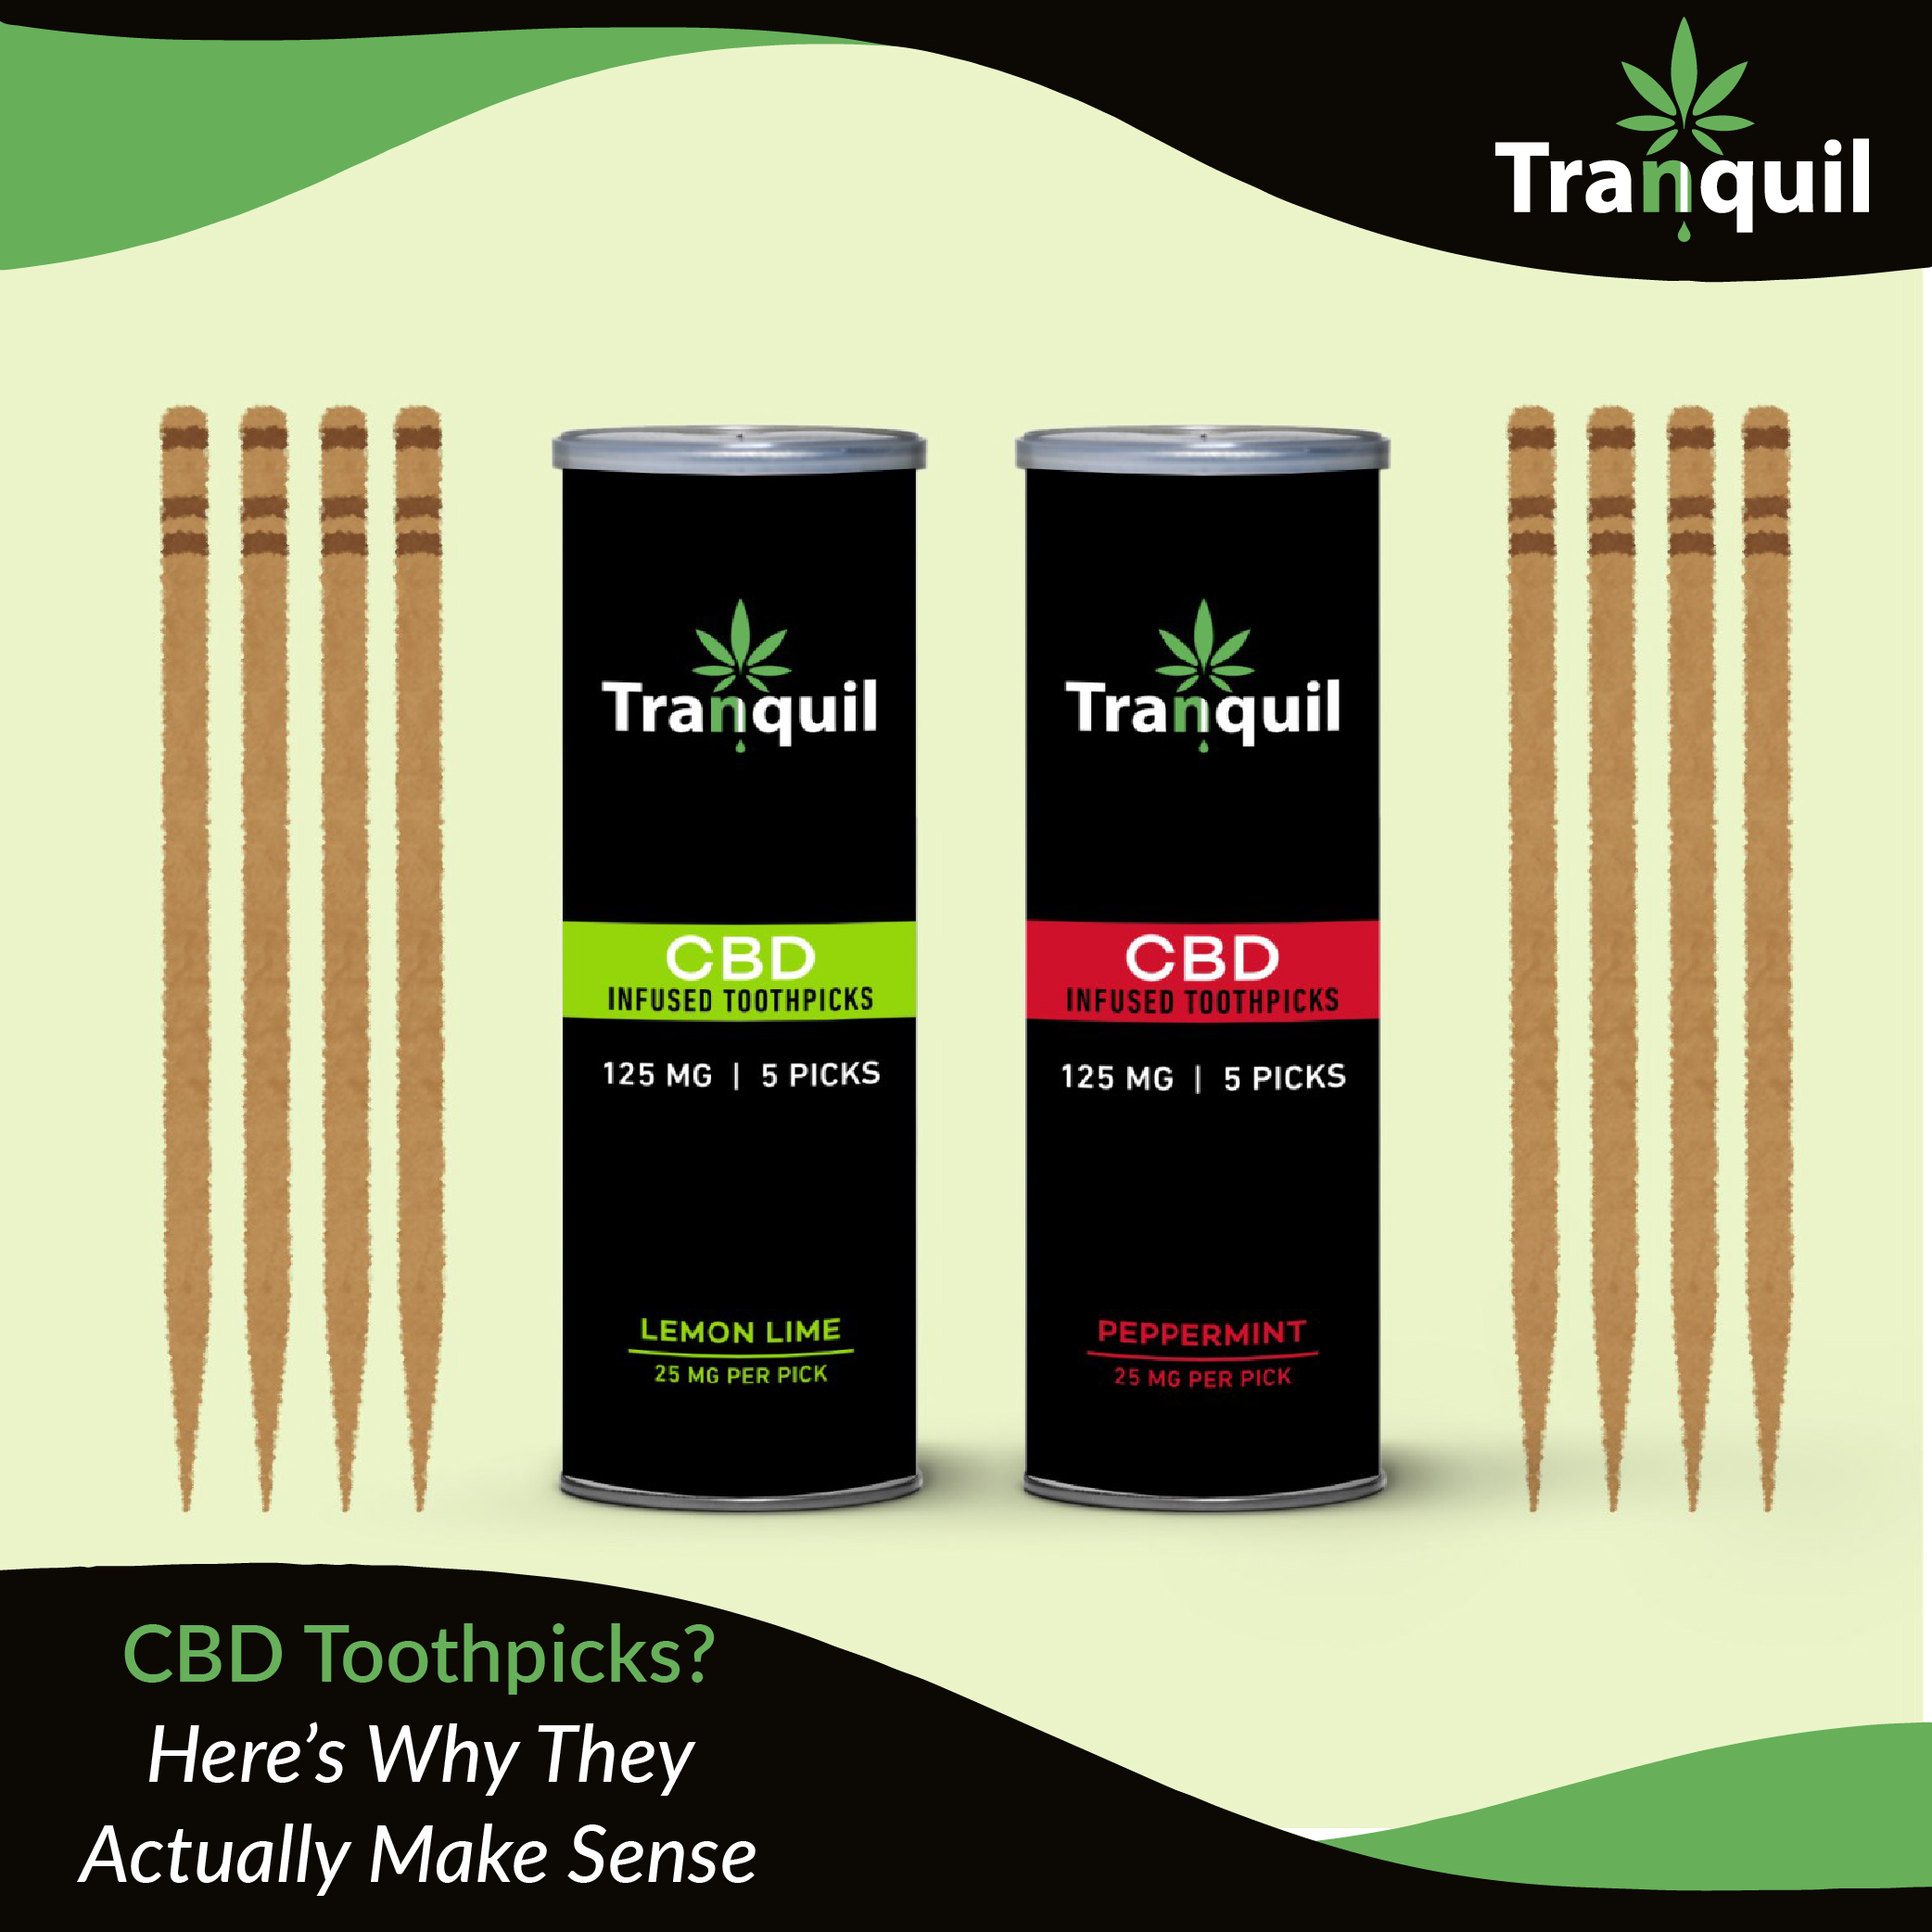 CBD Toothpicks? Here's Why They Actually Make Sense